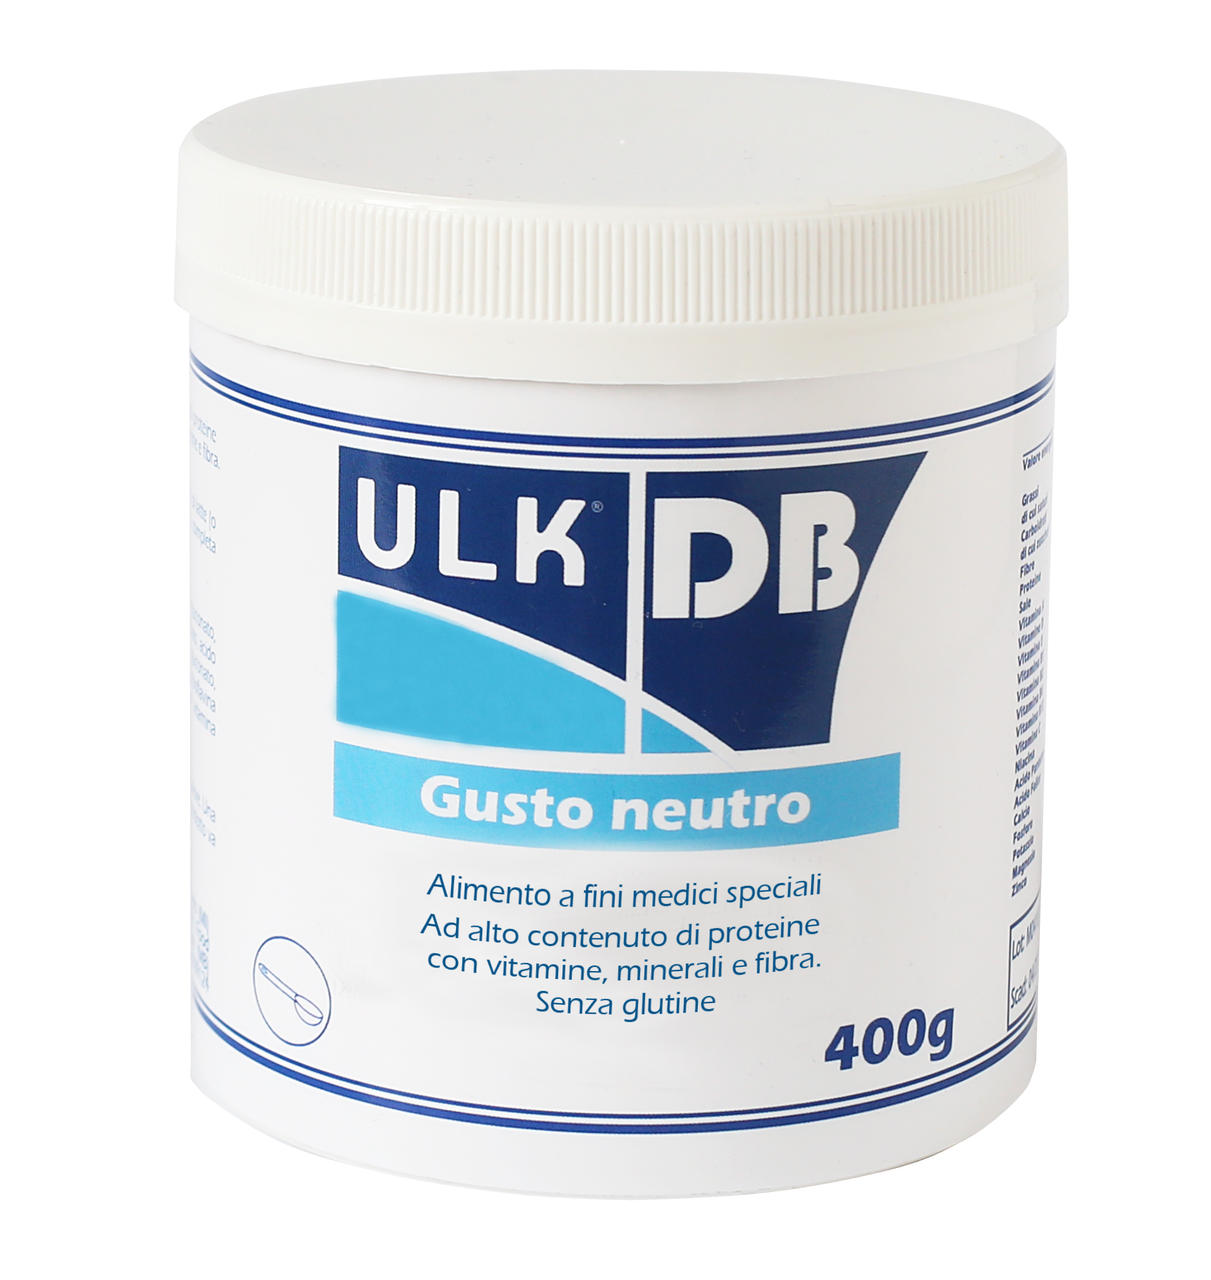 ULK Plus DB 400g Neutro